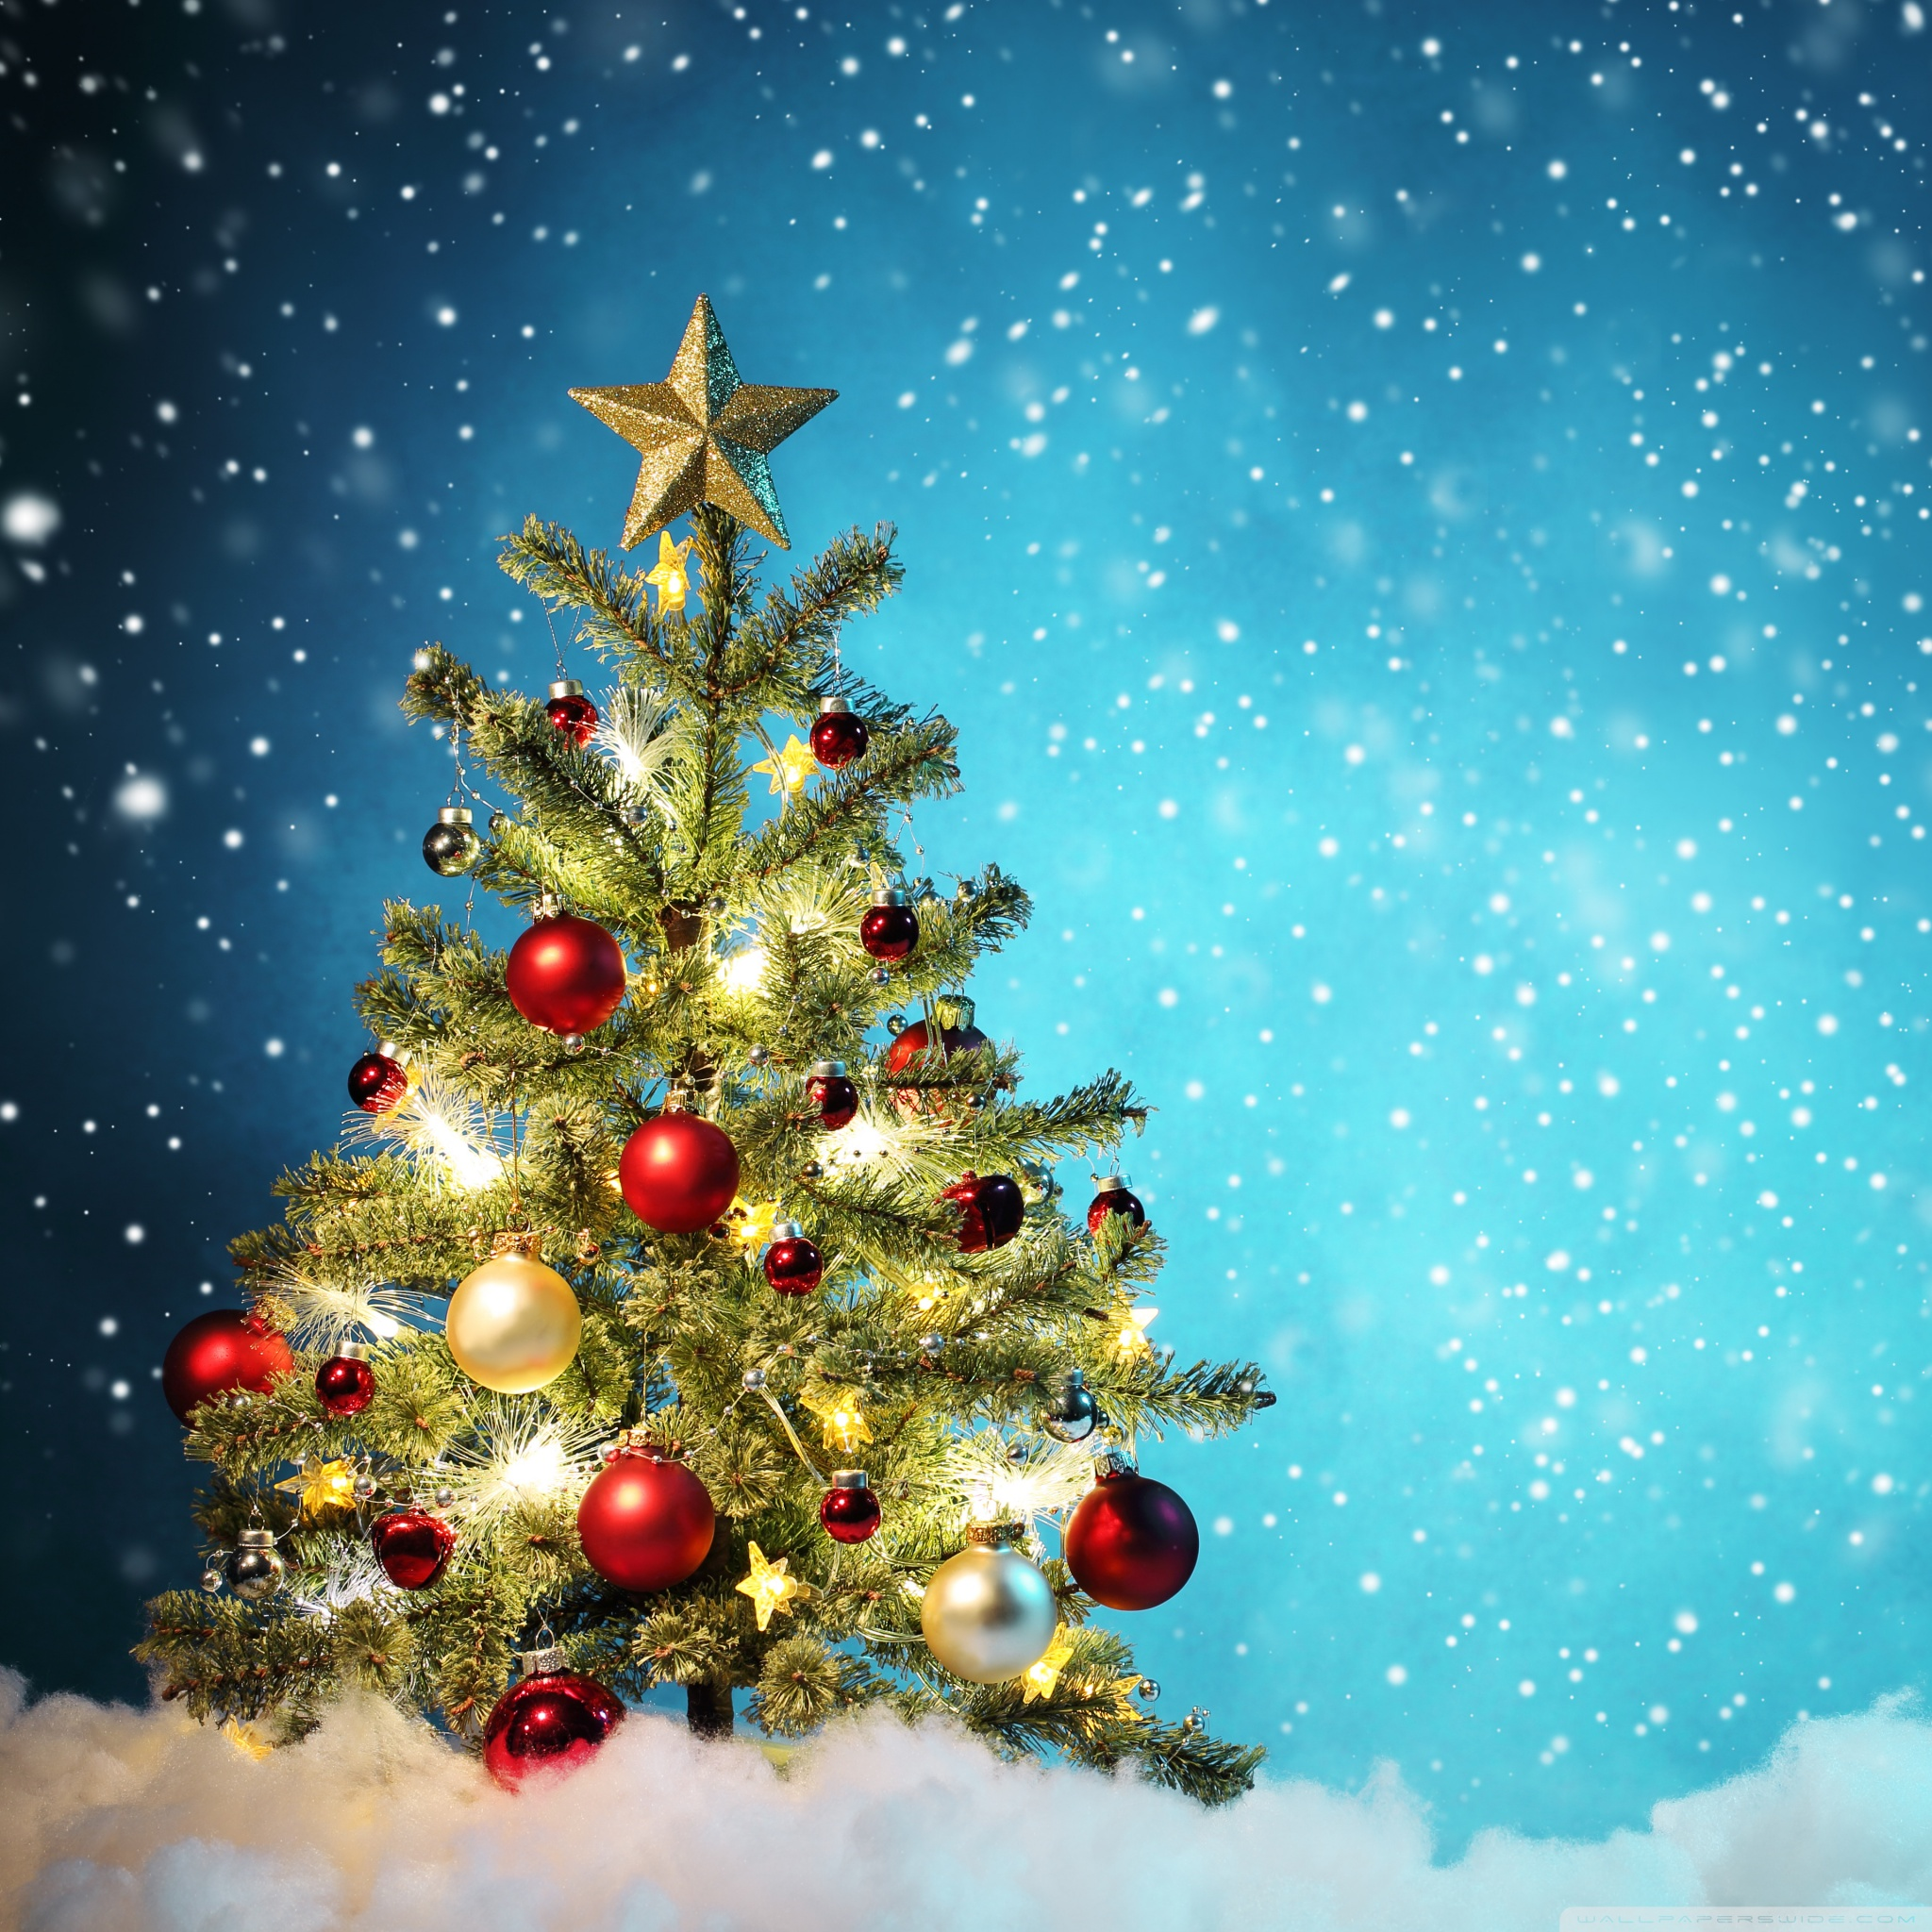 Christmas Wallpaper Android Tablet Merry Christmas